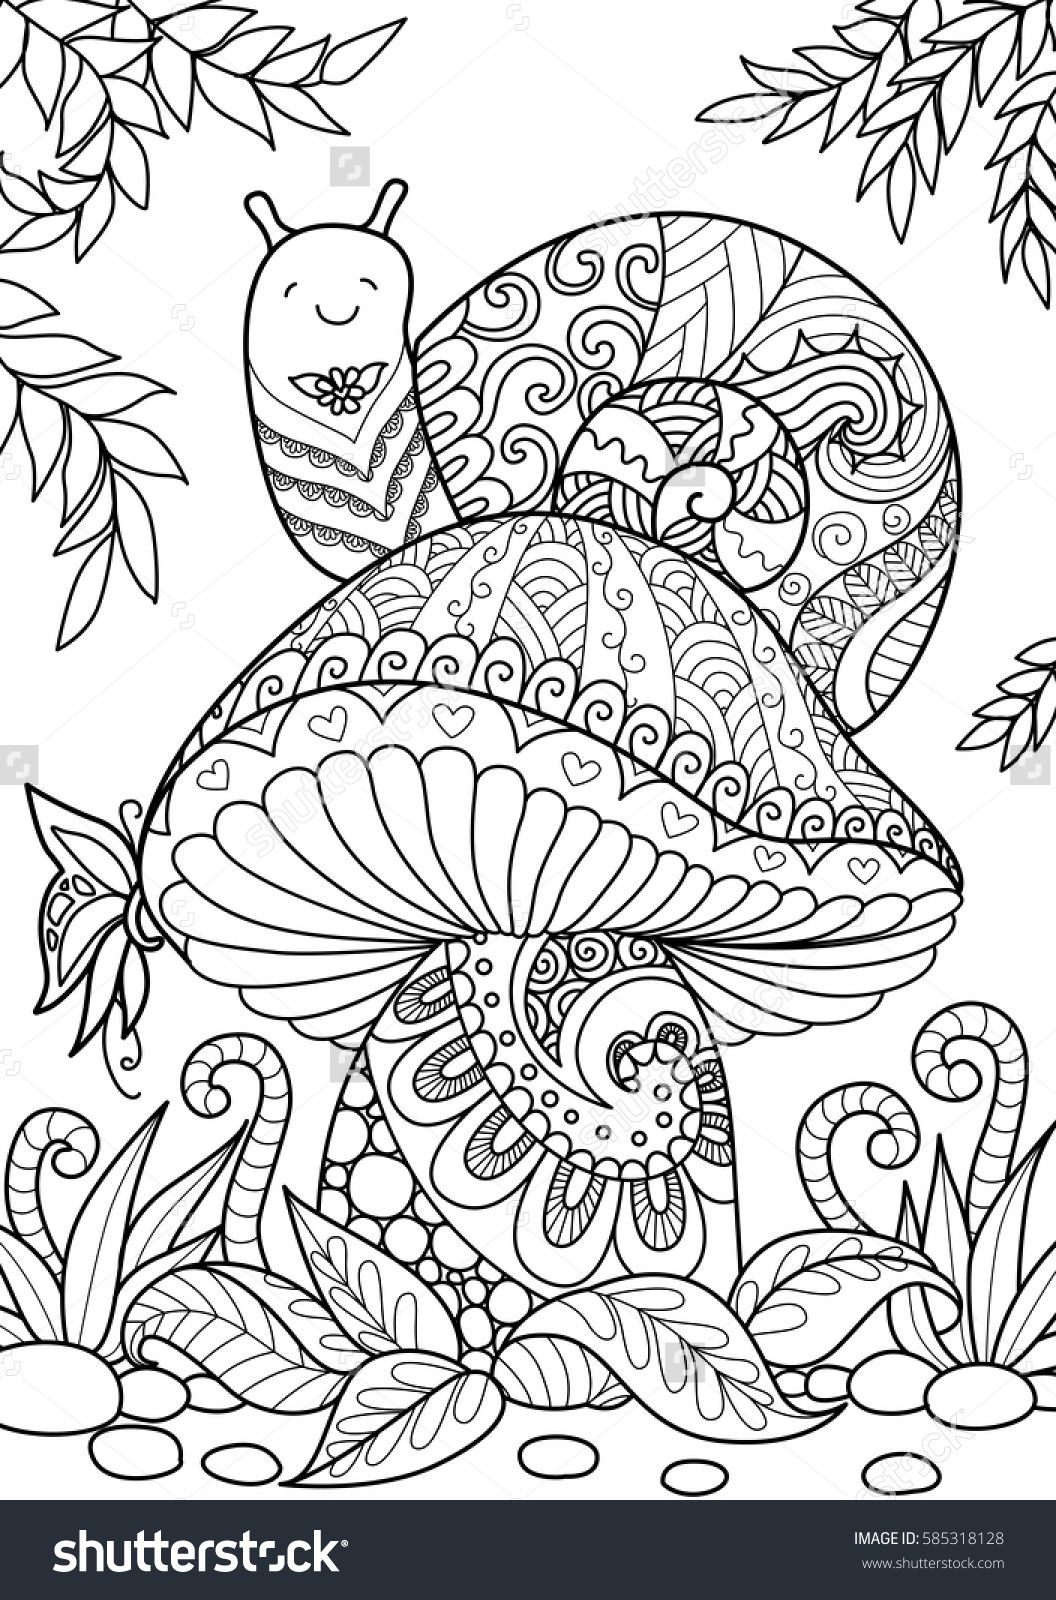 Snail sitting on beautiful mushroom for T-Shirt design, tattoo and ...